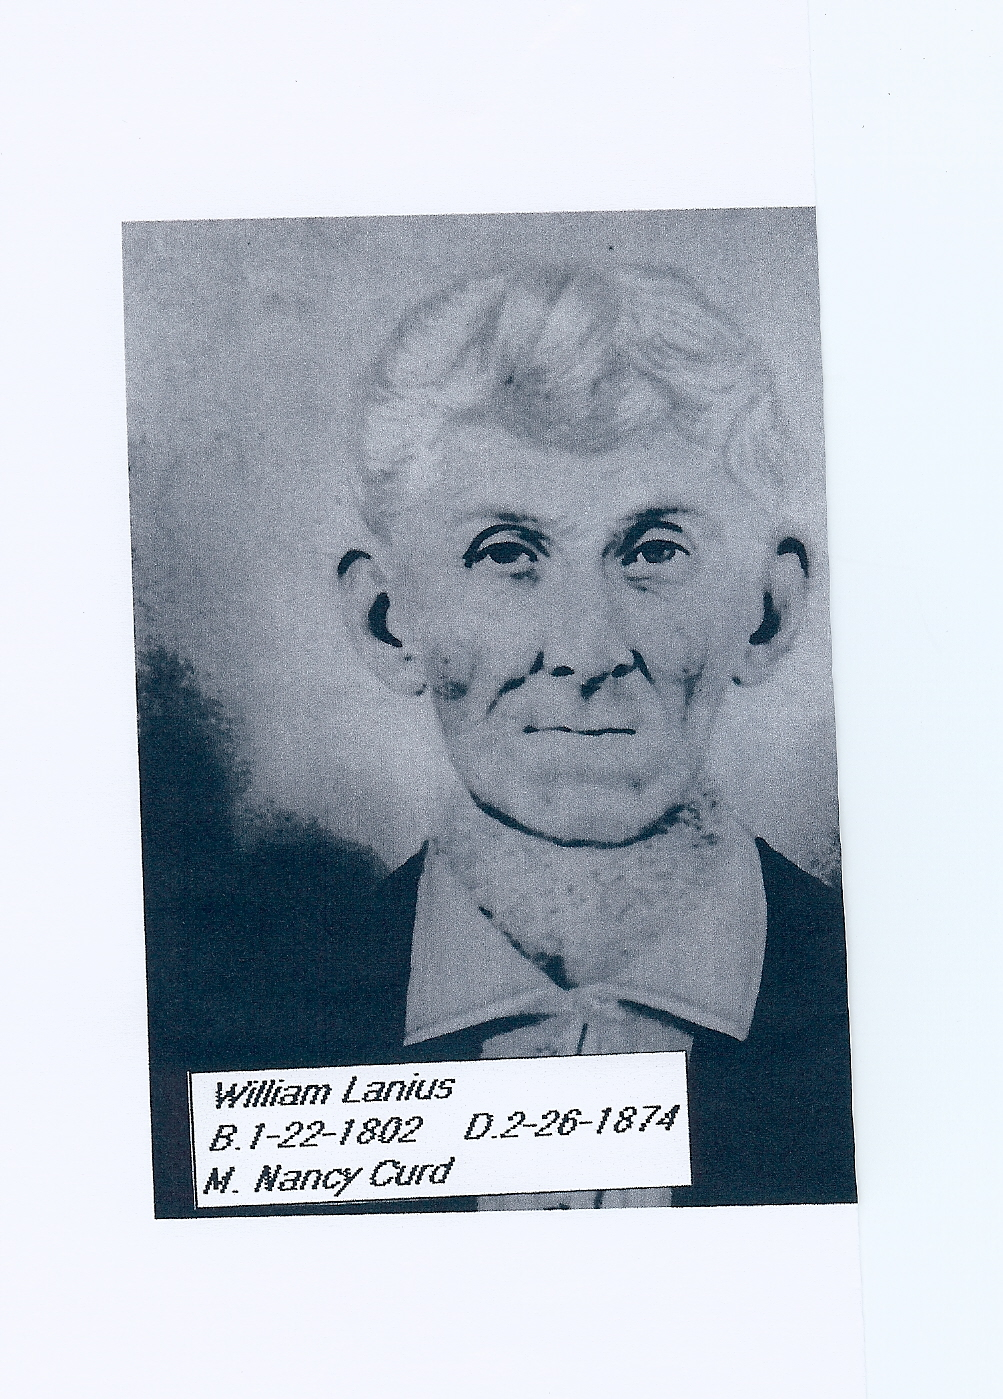 William Lanius